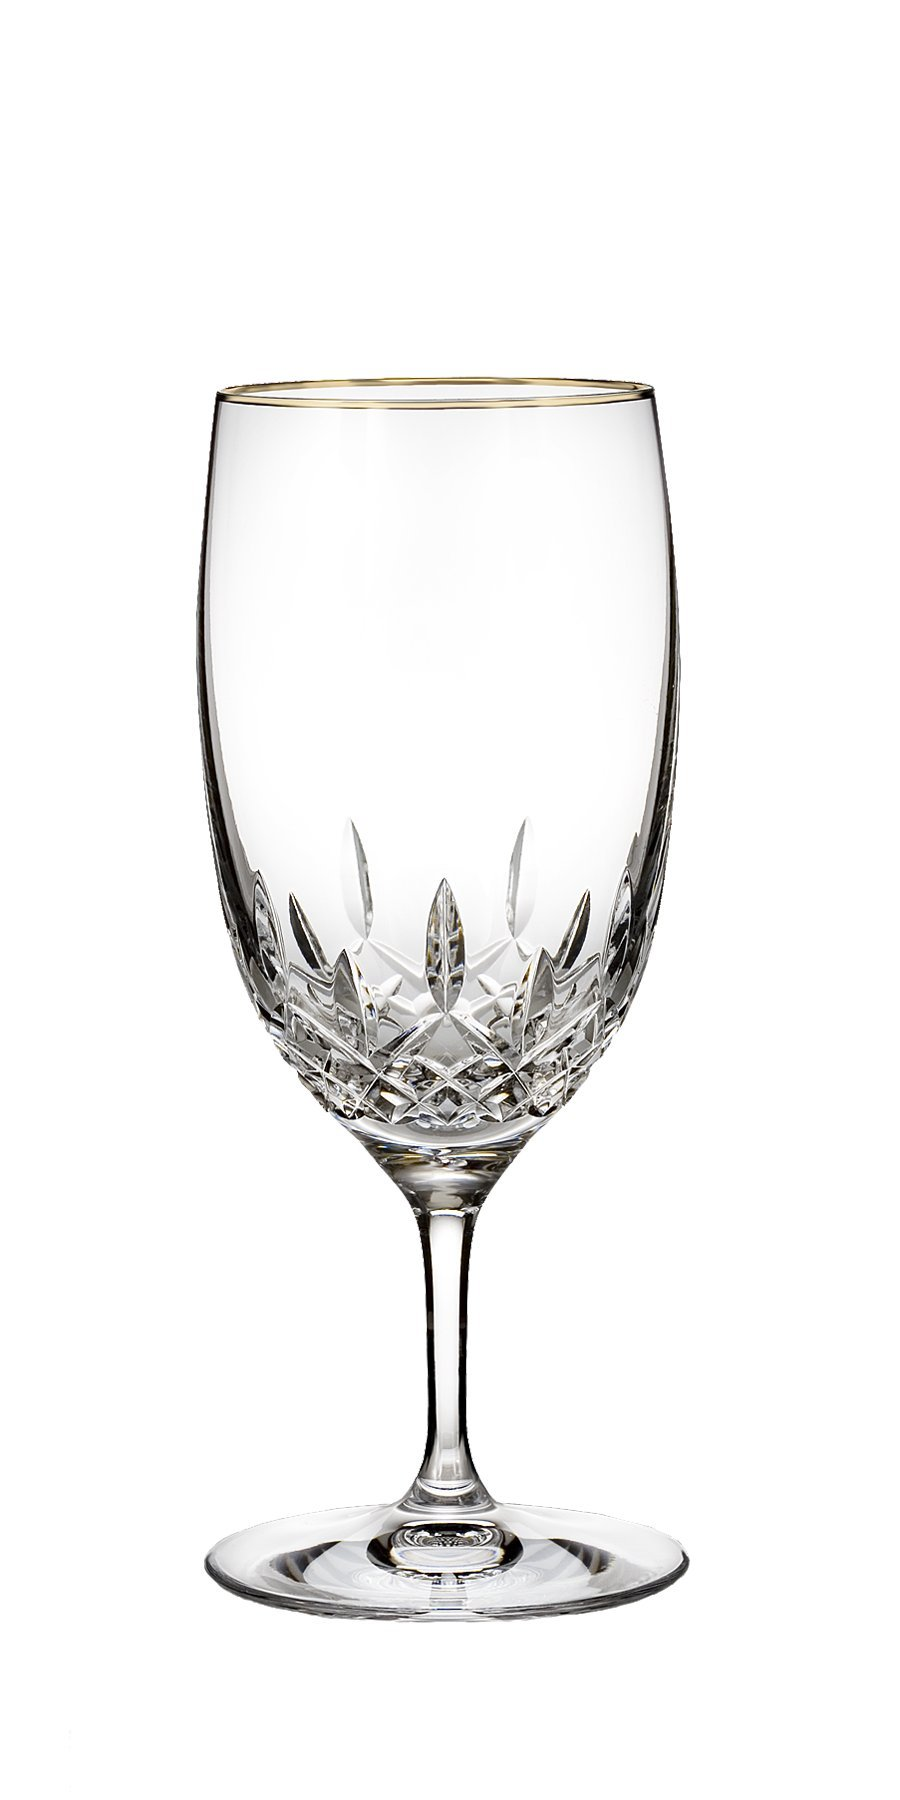 Waterford Lismore Essence Gold Stemware Iced Beverage Glass